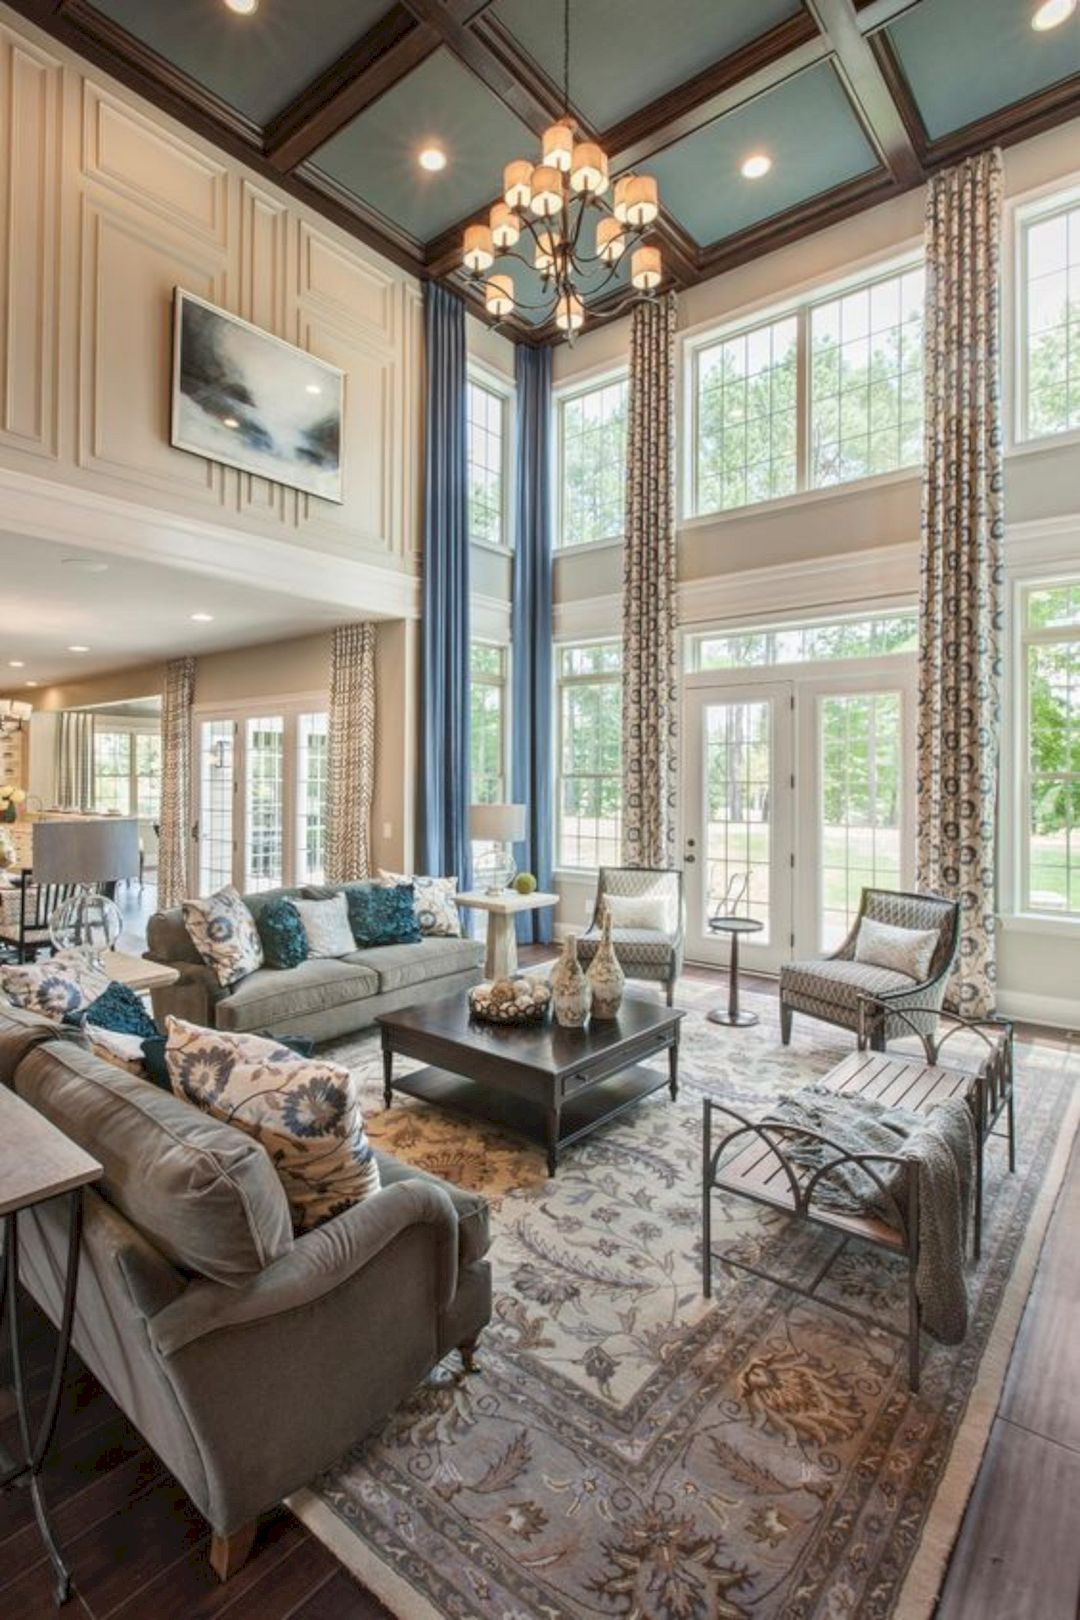 15 amazing furniture layout ideas to arrange your family on family picture wall ideas for living room furniture arrangements id=78908